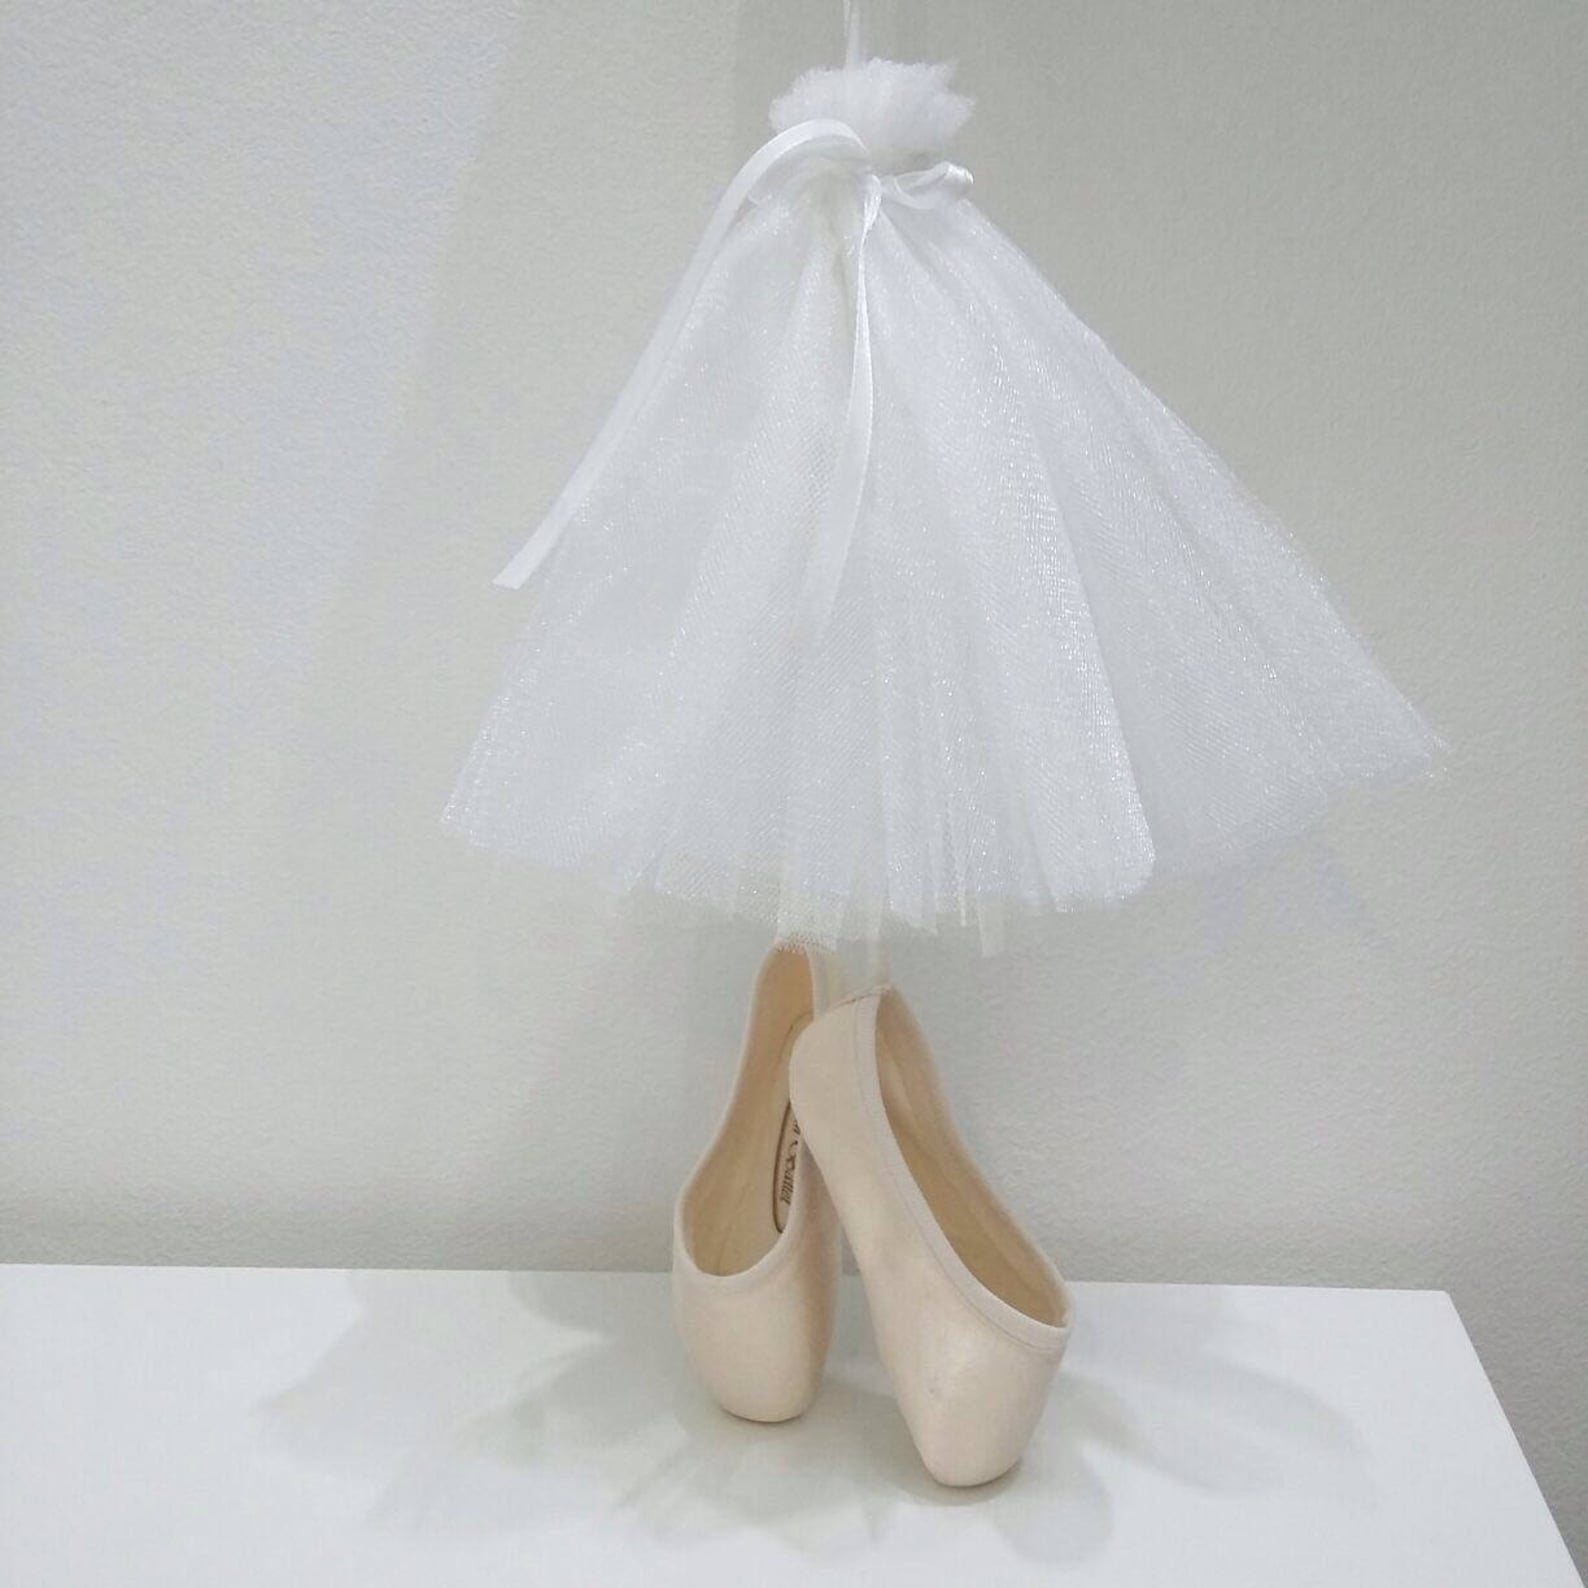 white skirt half-size replica of pointe shoes, mobiles for babies, russian ballet, newborn gift, home decor, bedroom for newborn